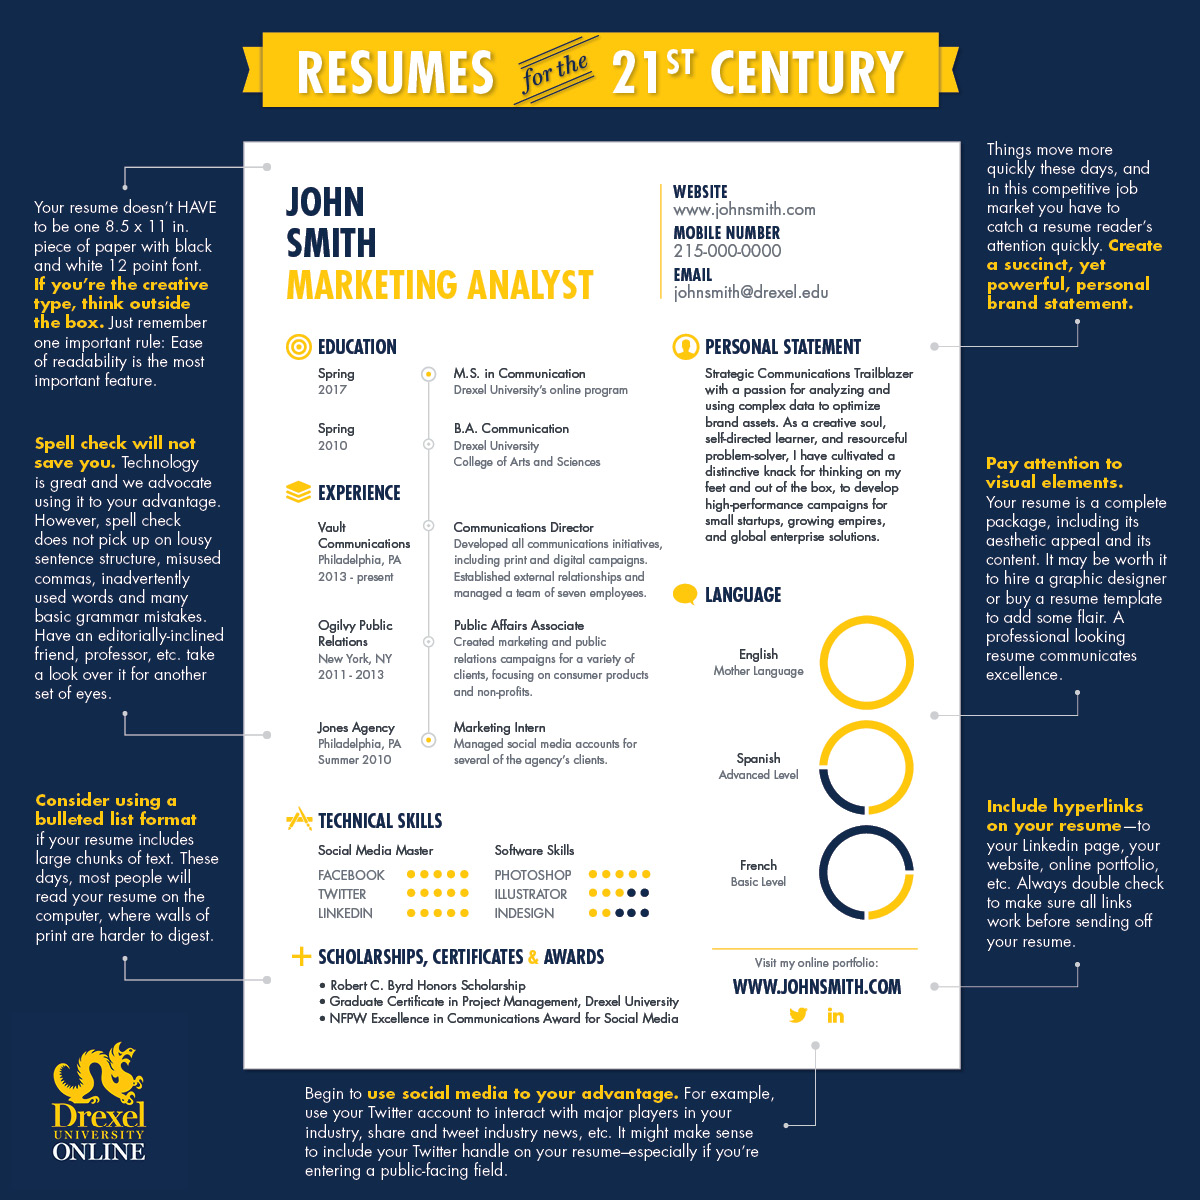 Resumes of 21st Century Infographic Updated(1)